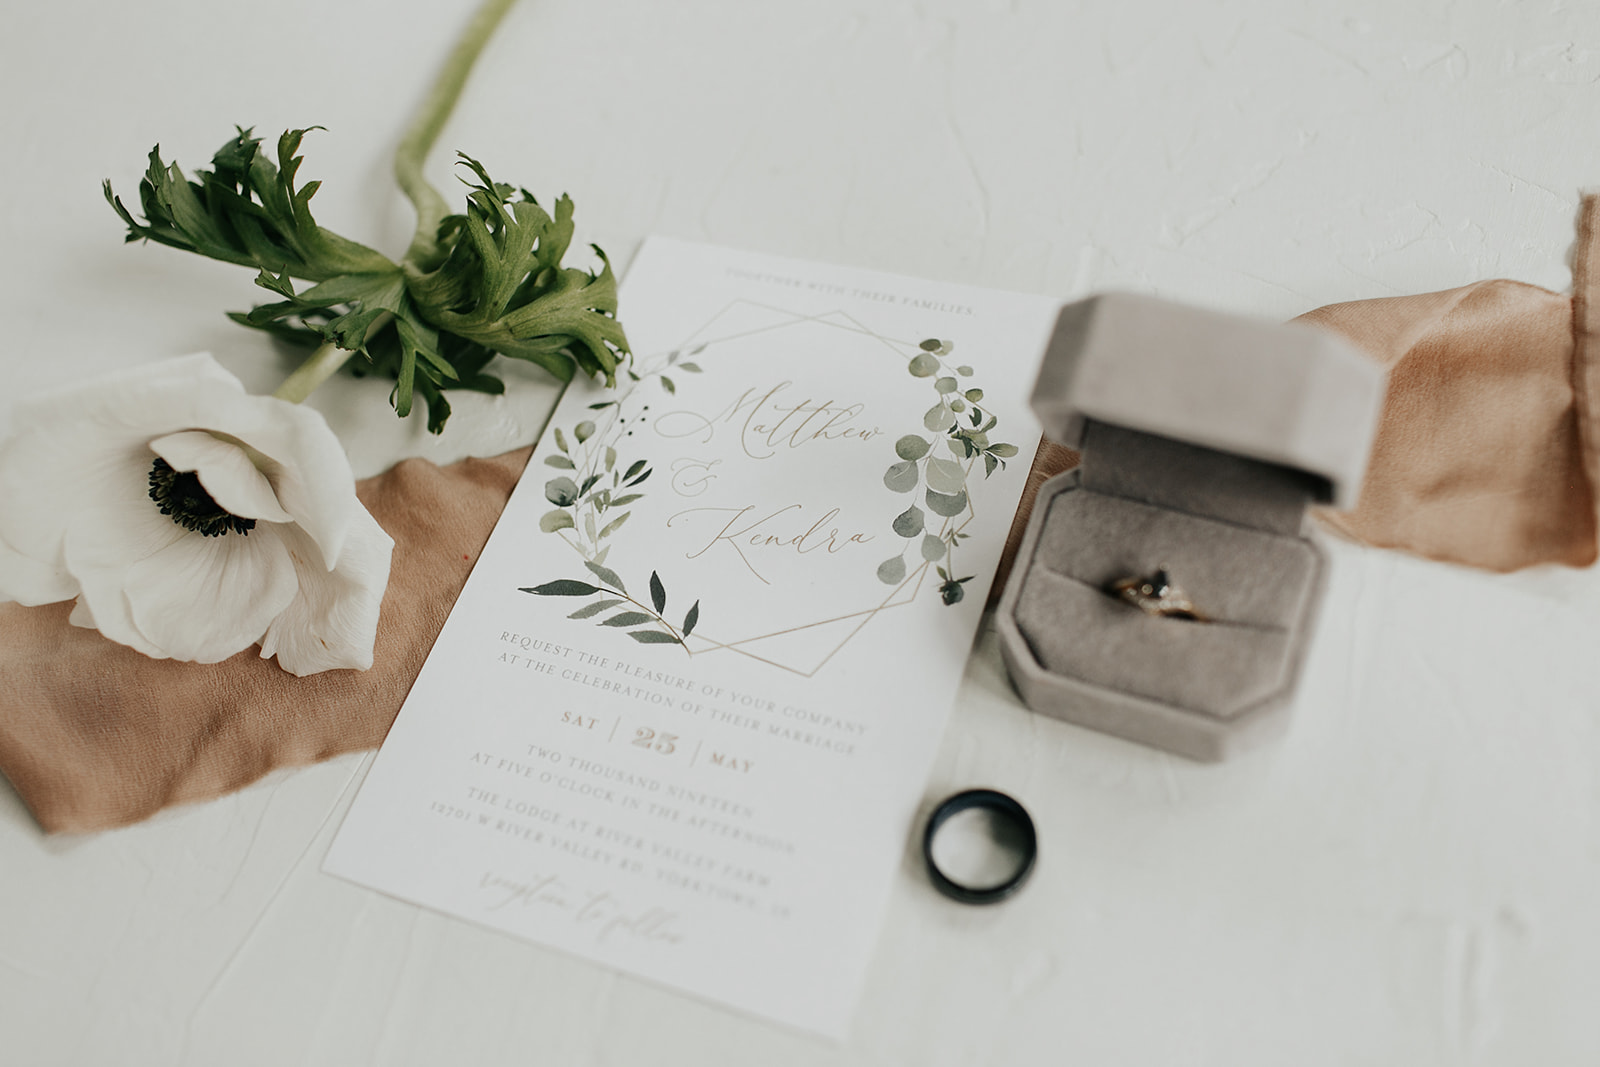 Kendra_and_Mattew_Indiana_Wedding_by_Emily_Wehner-38.jpg